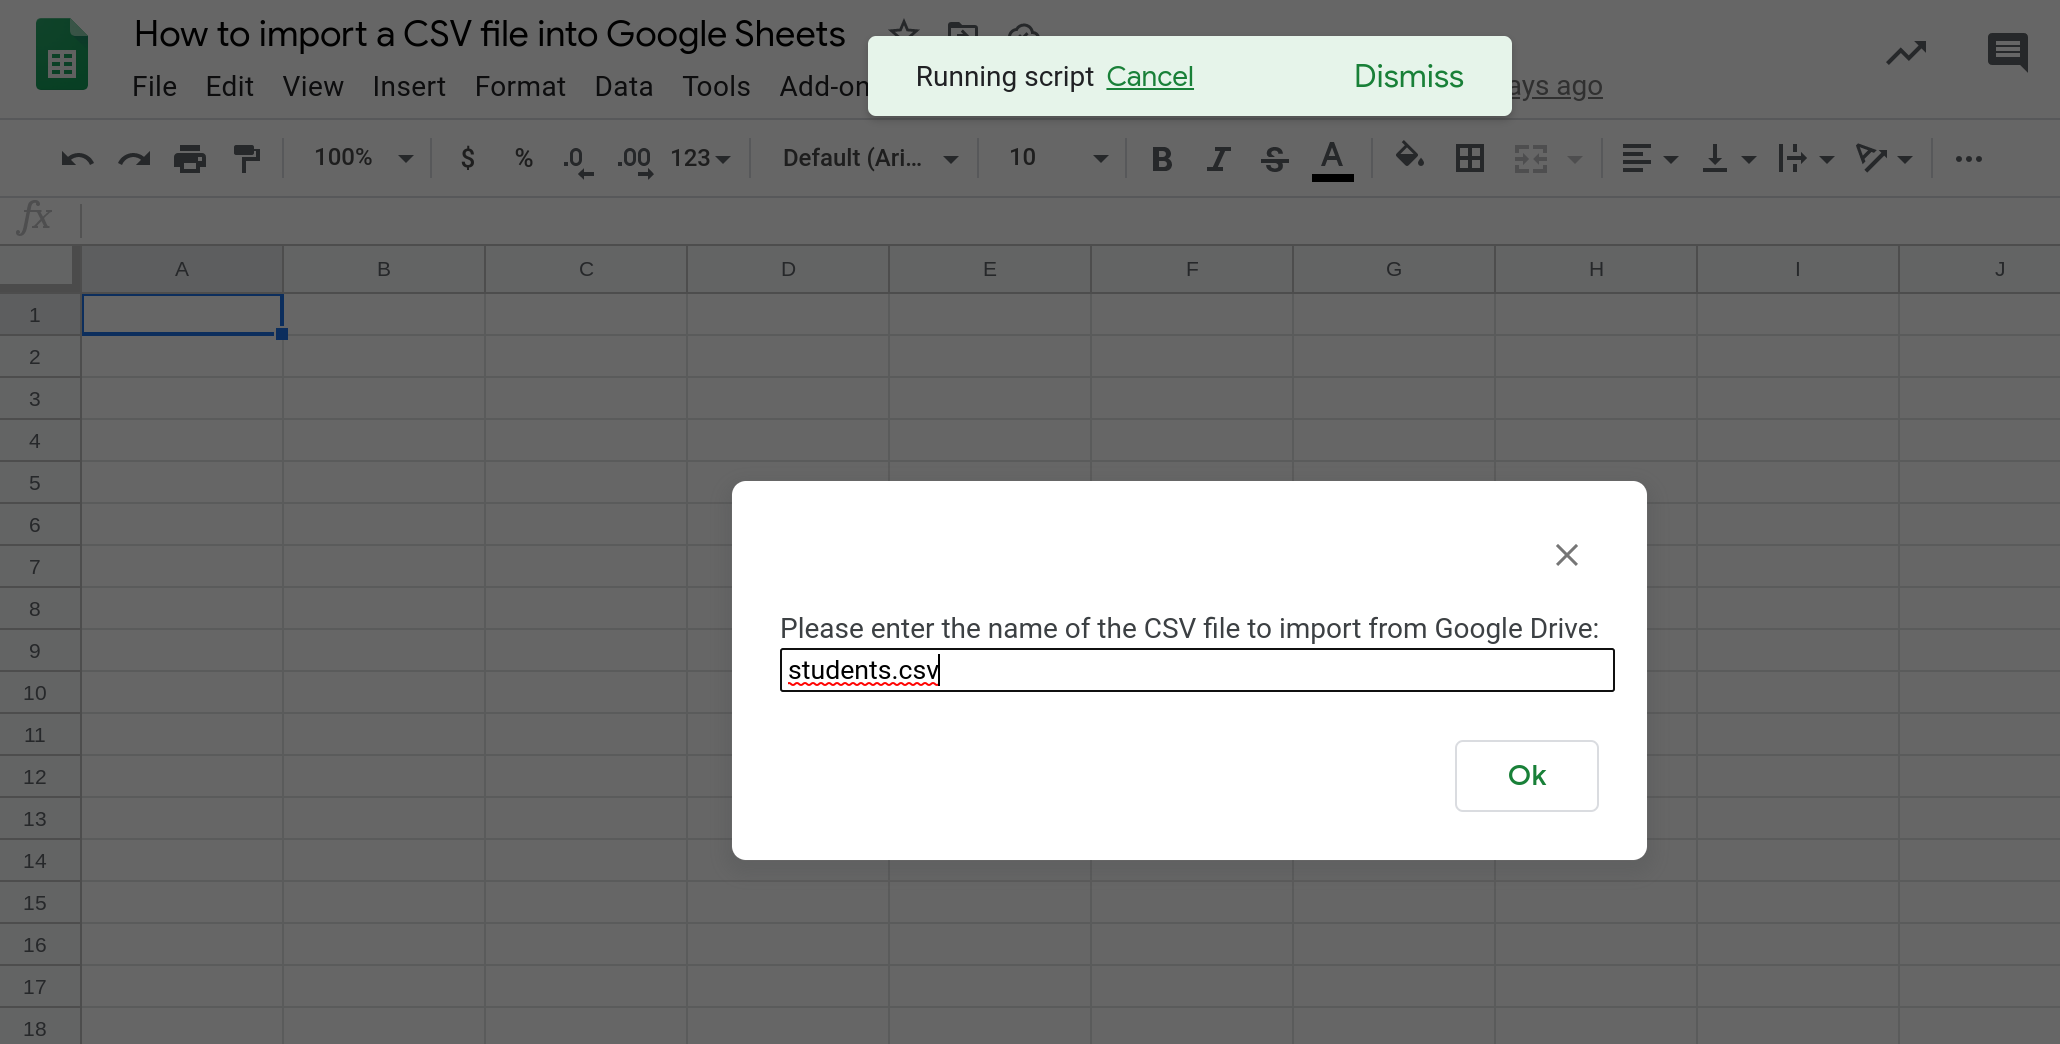 Screenshot of a prompt dialog asking the user to enter the name of the CSV file they want to import from Google Drive.